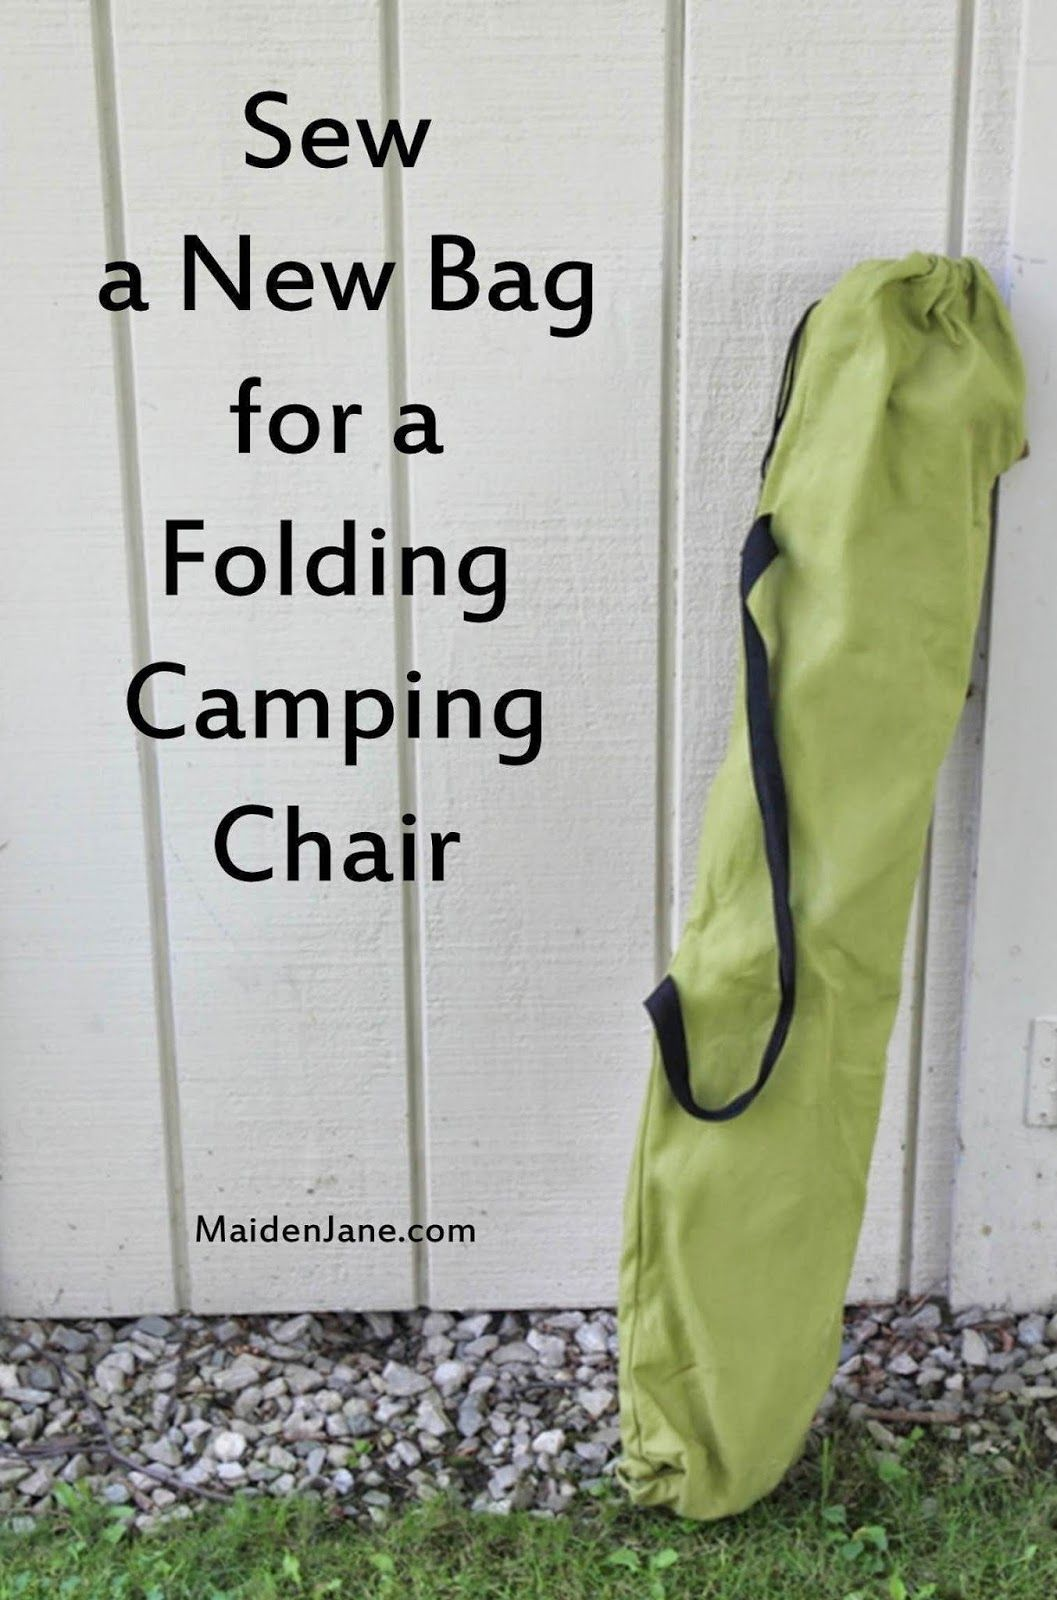 Sew A New Bag For A Folding Camping Chair   DIY   Tutorial